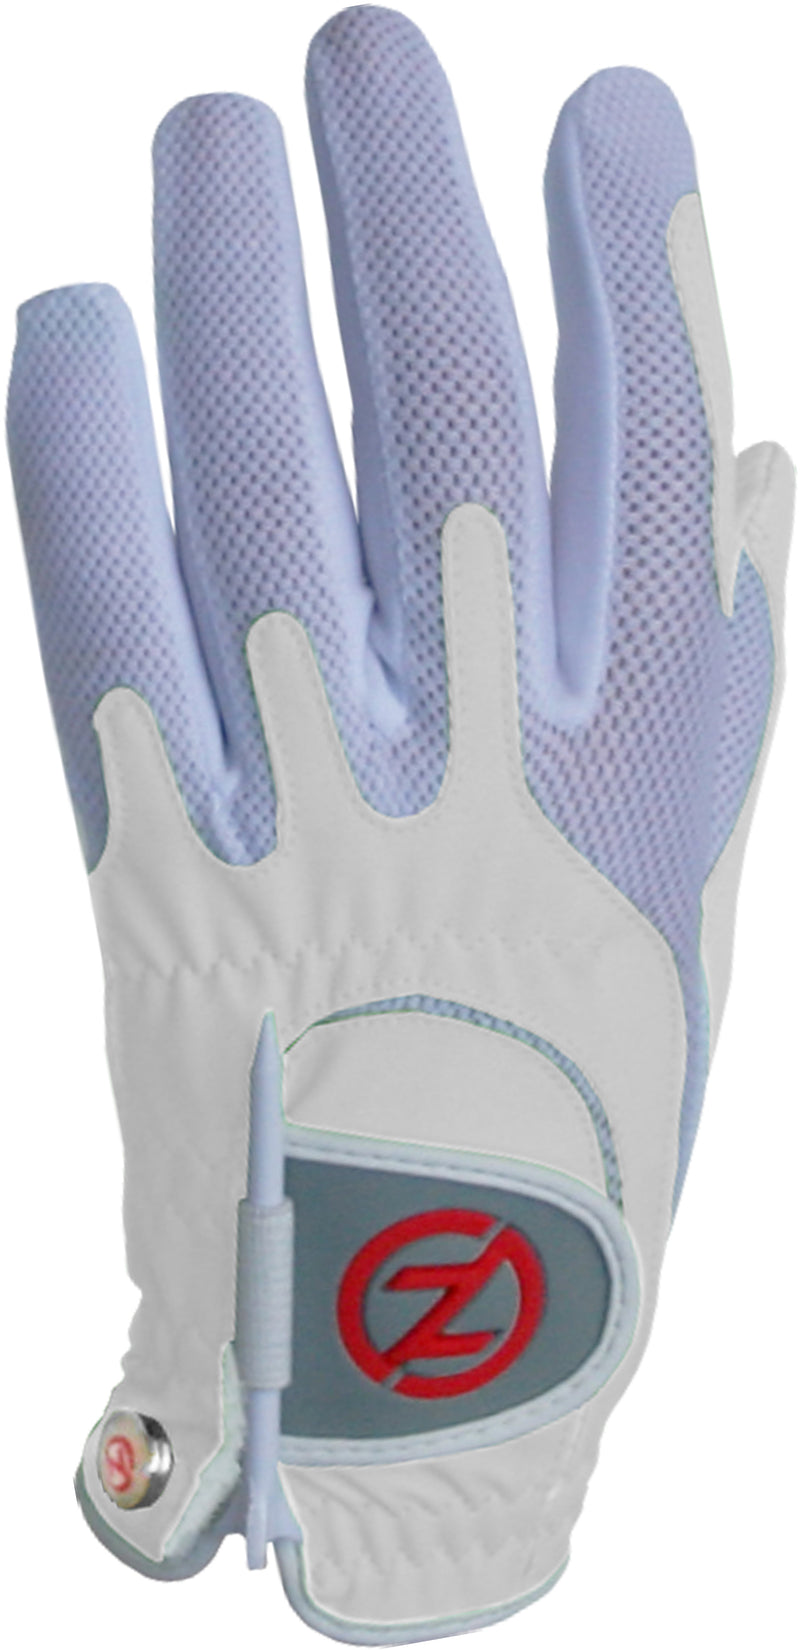 Zero Friction Women's - White - Apparelly Gloves